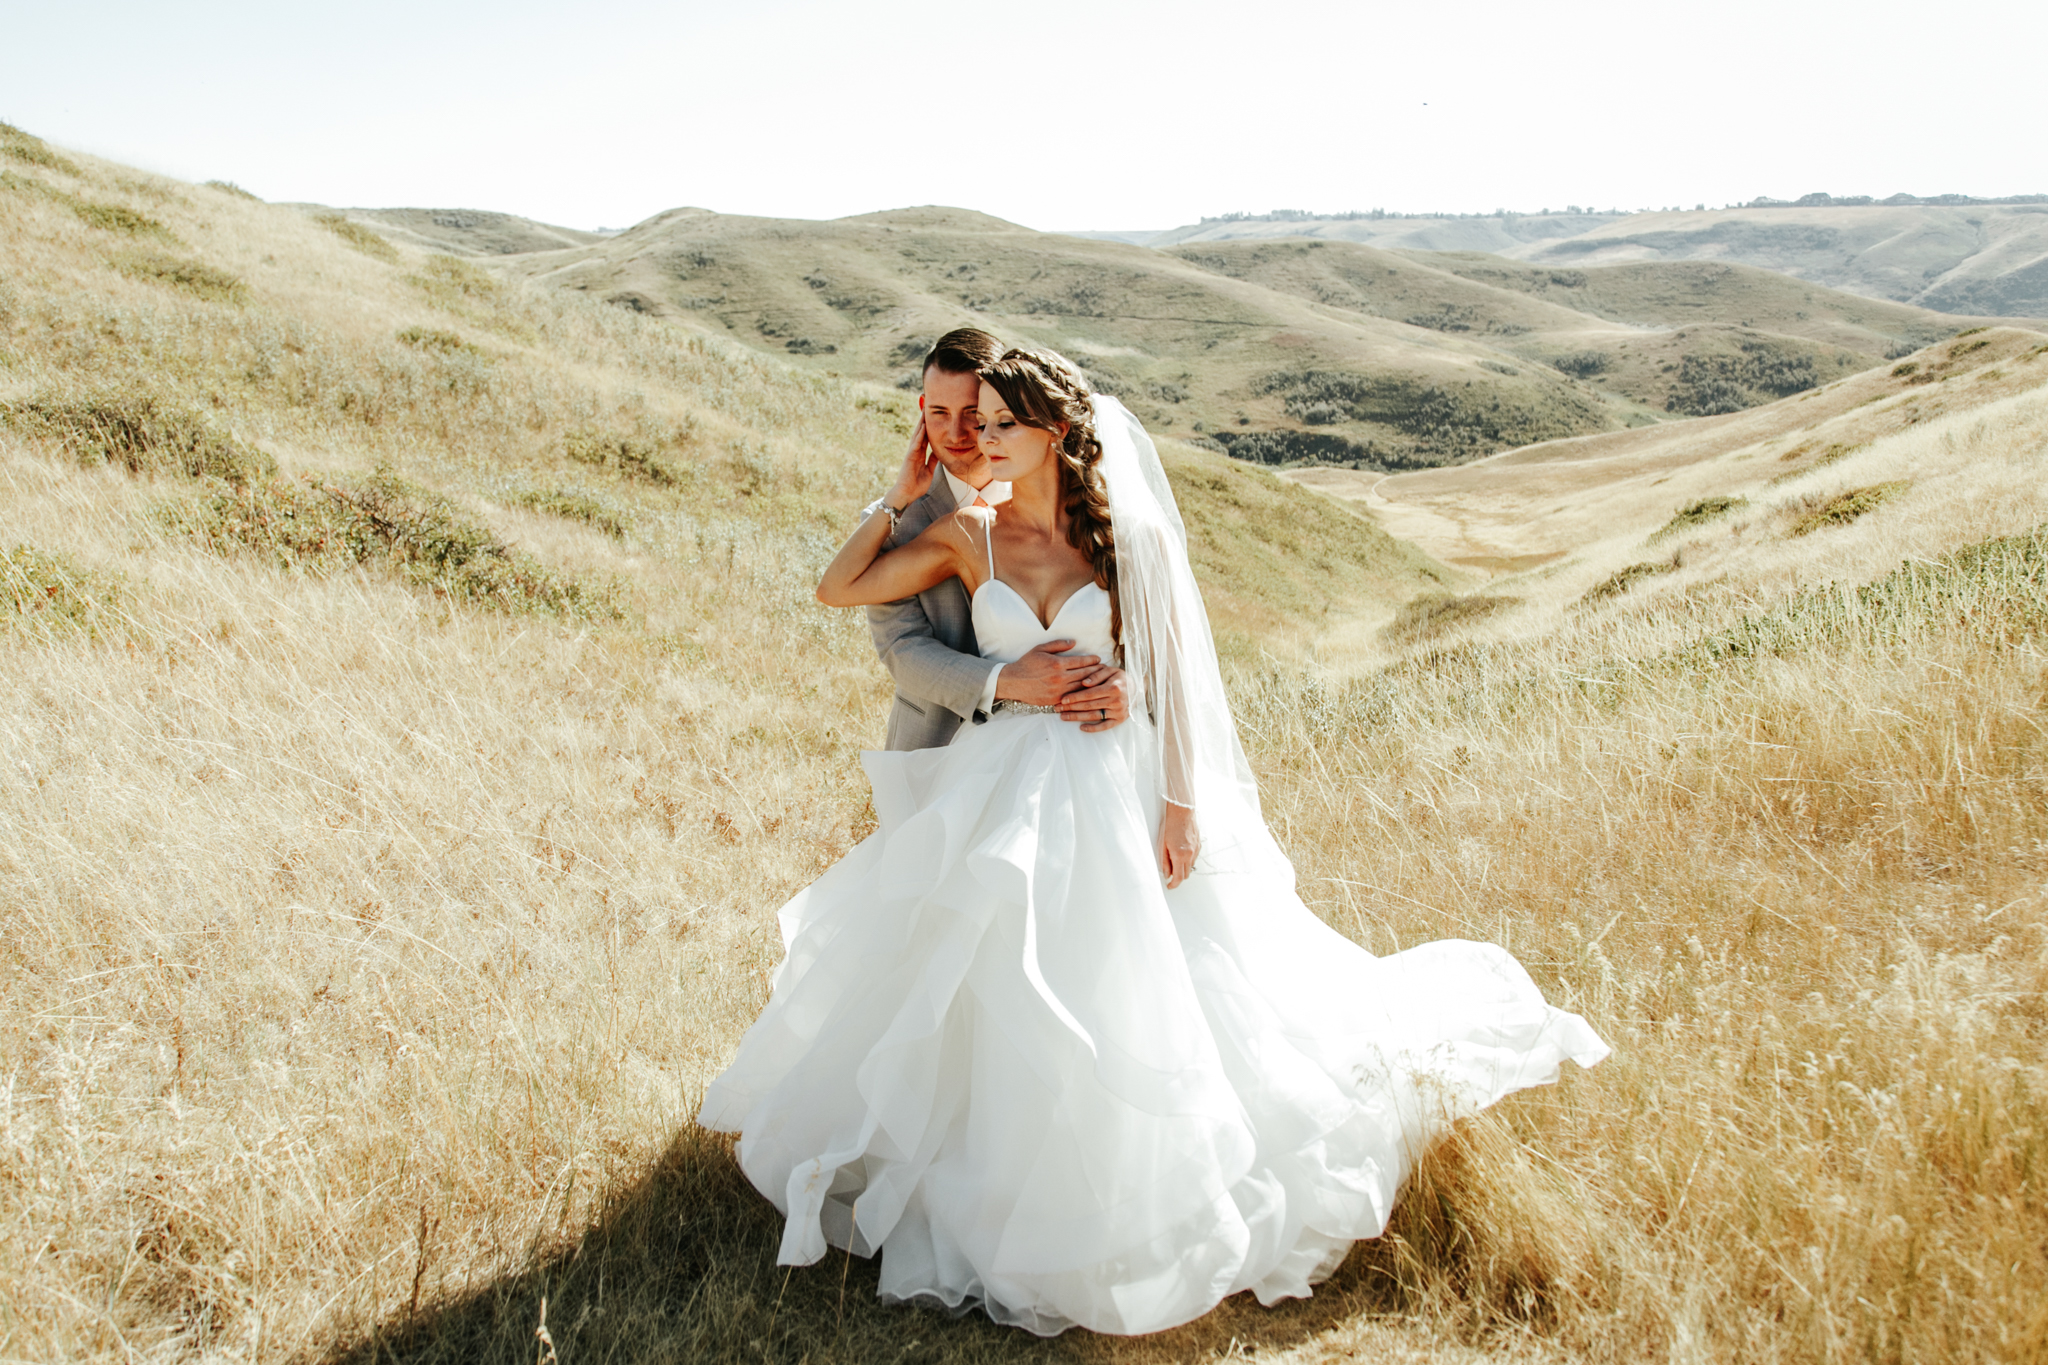 lethbridge-wedding-photography-love-and-be-loved-photographer-sean-sharla-henderson-lake-wedding-image-picture-photo-102.jpg